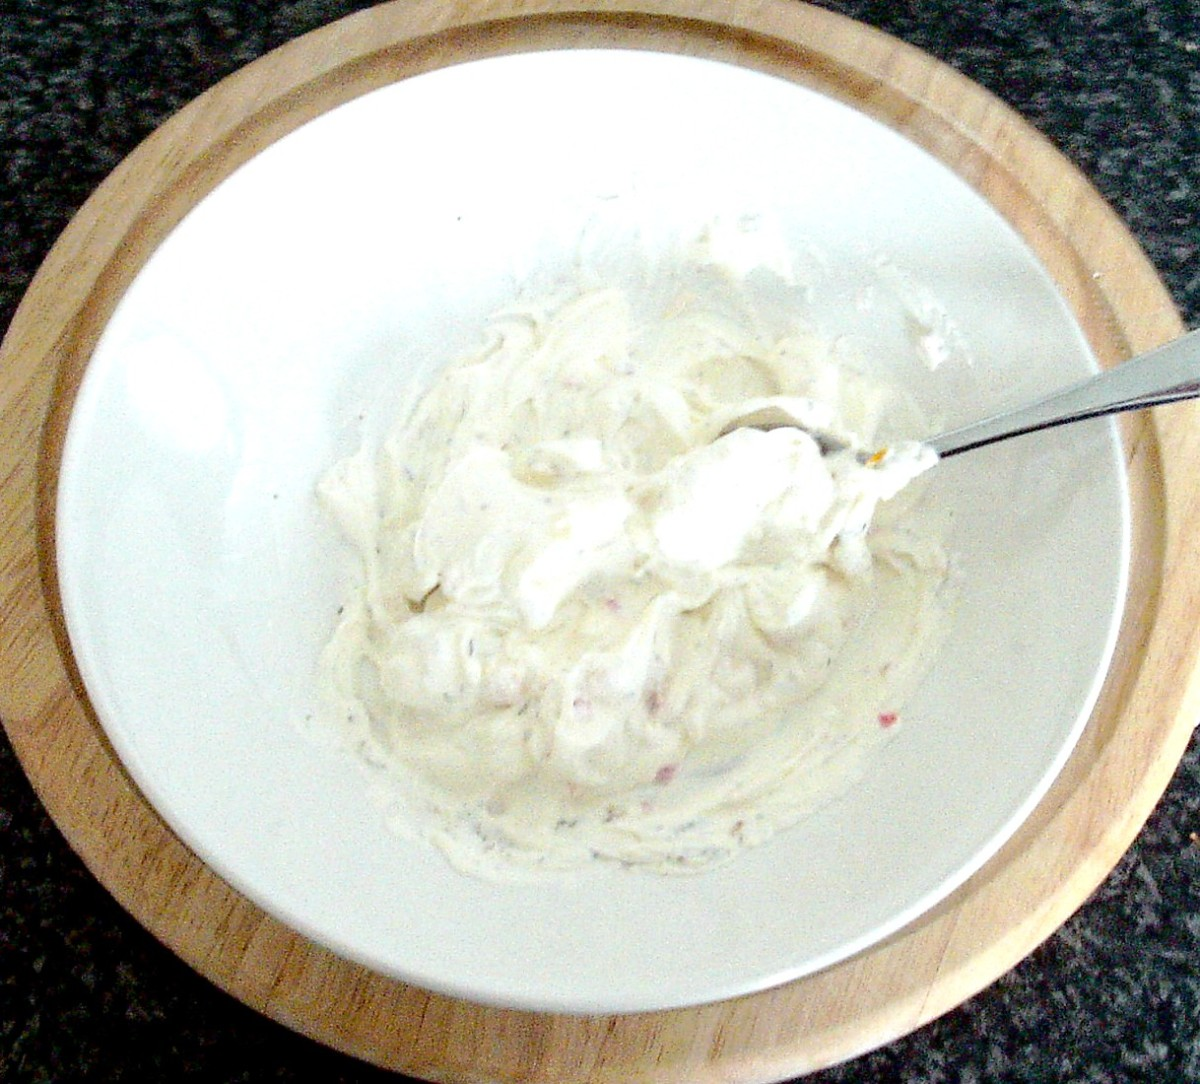 Herbs and spices are stirred in to cream cheese